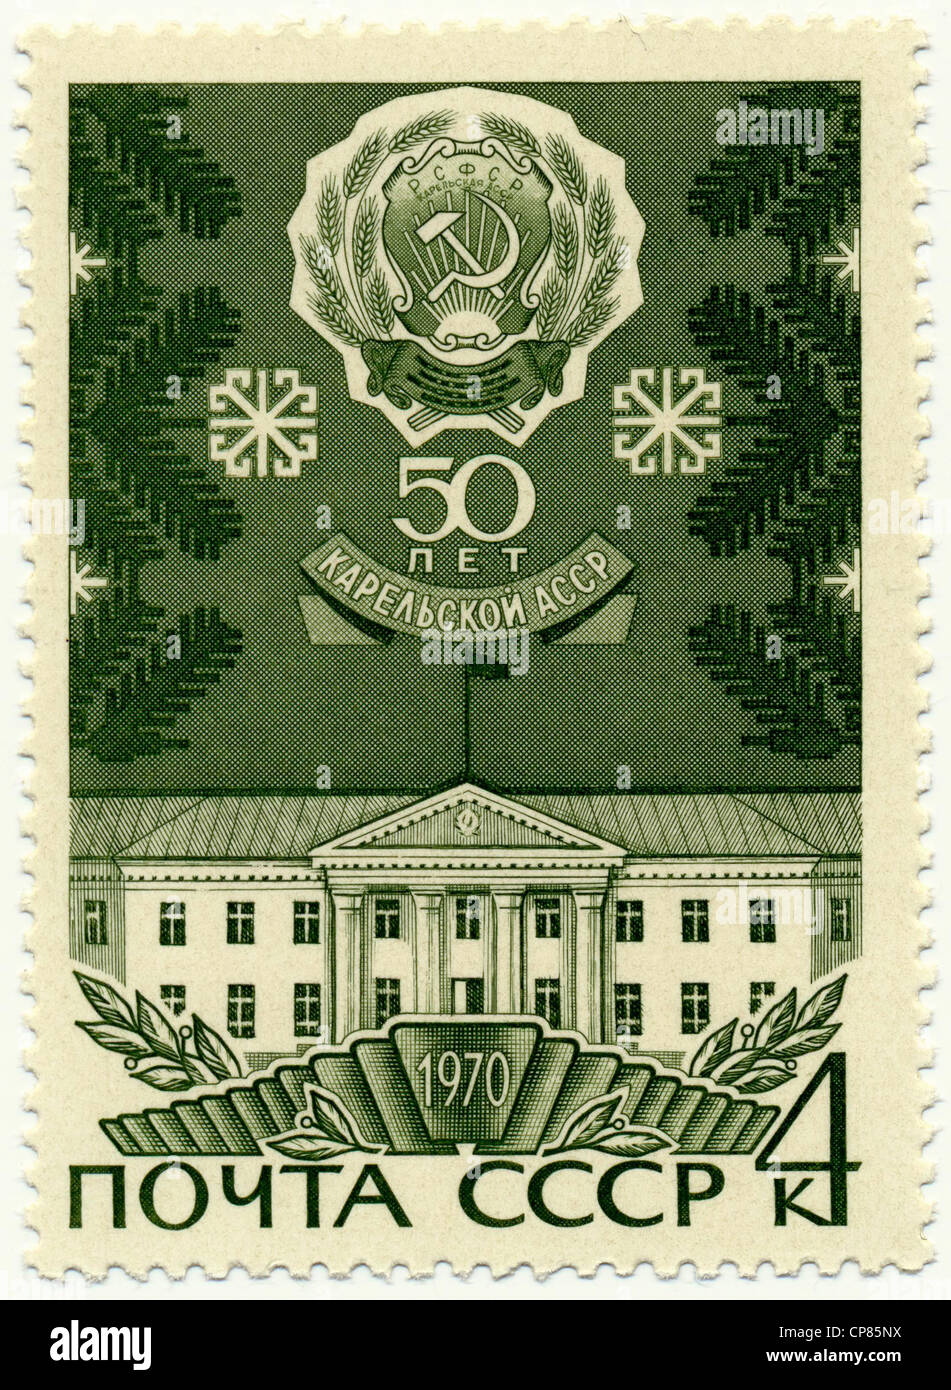 Historic postage stamps of the USSR, political motives, the anniversary of the founding of the Karelian Autonomous - Stock Image